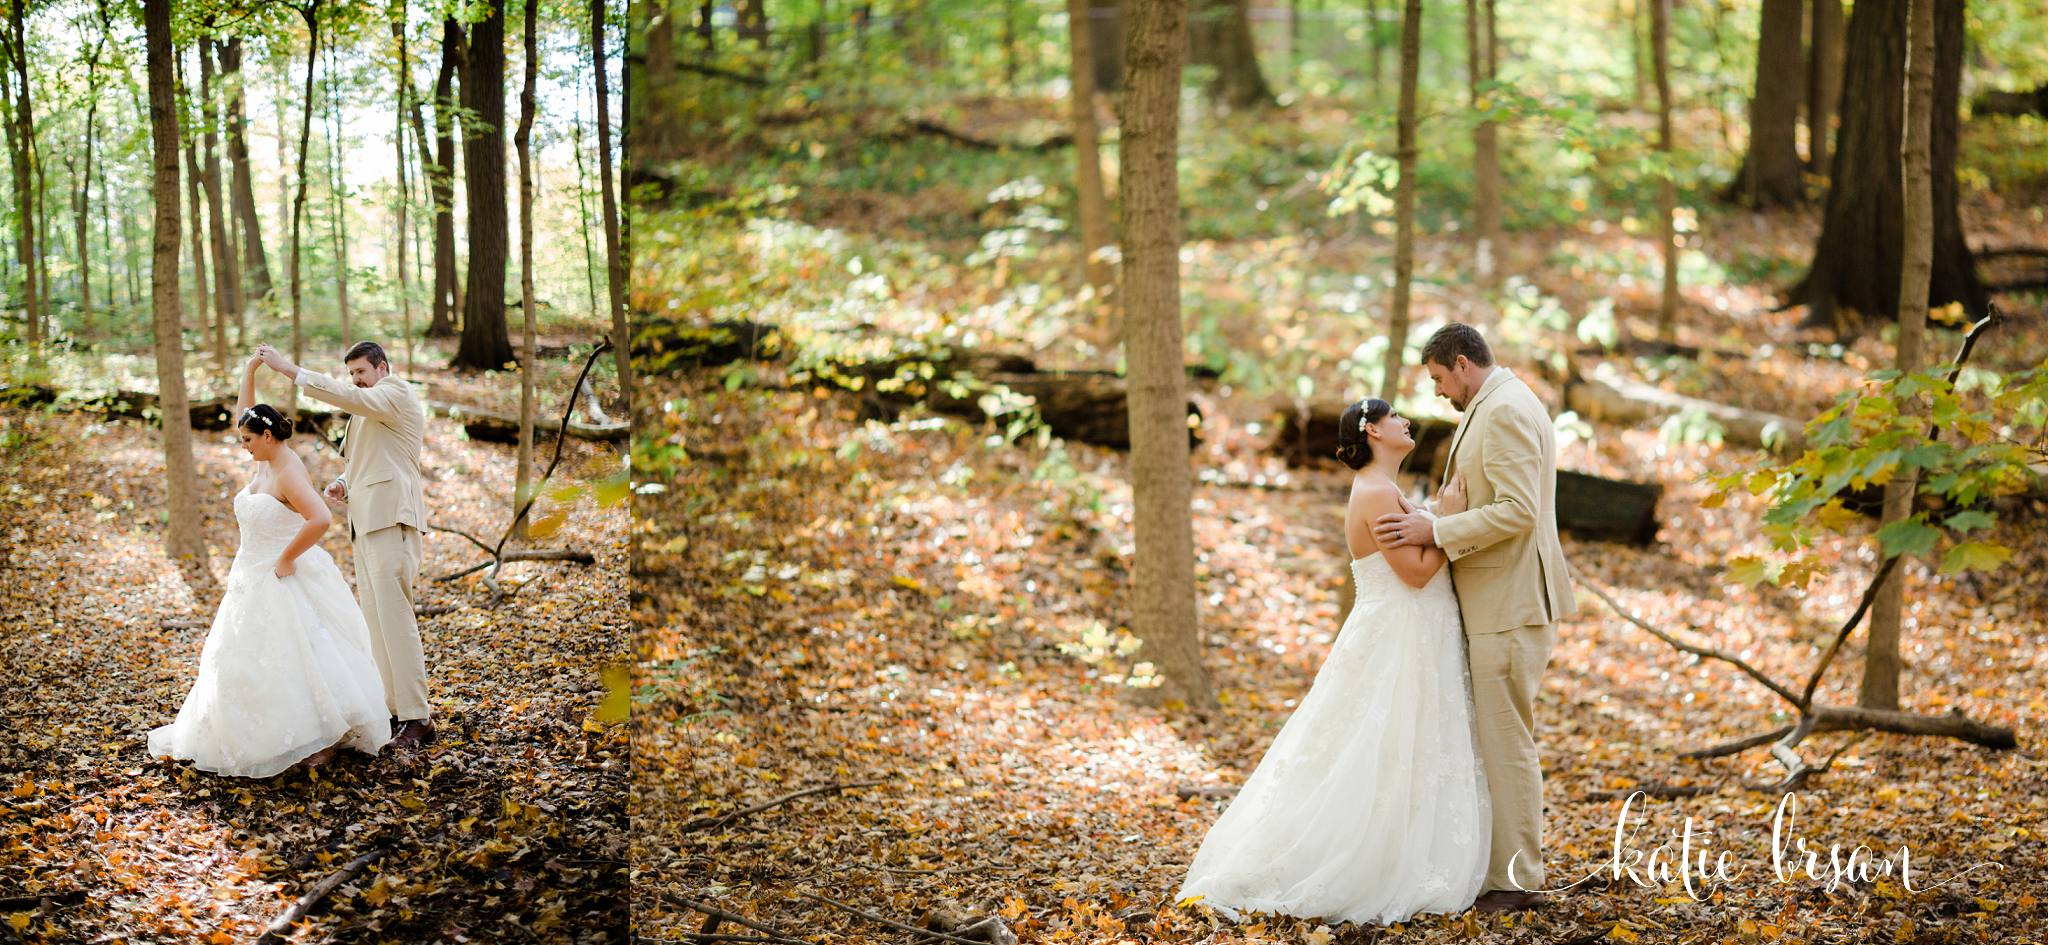 DownersGrove_BackyardWedding_GilbertsPark_1067.jpg